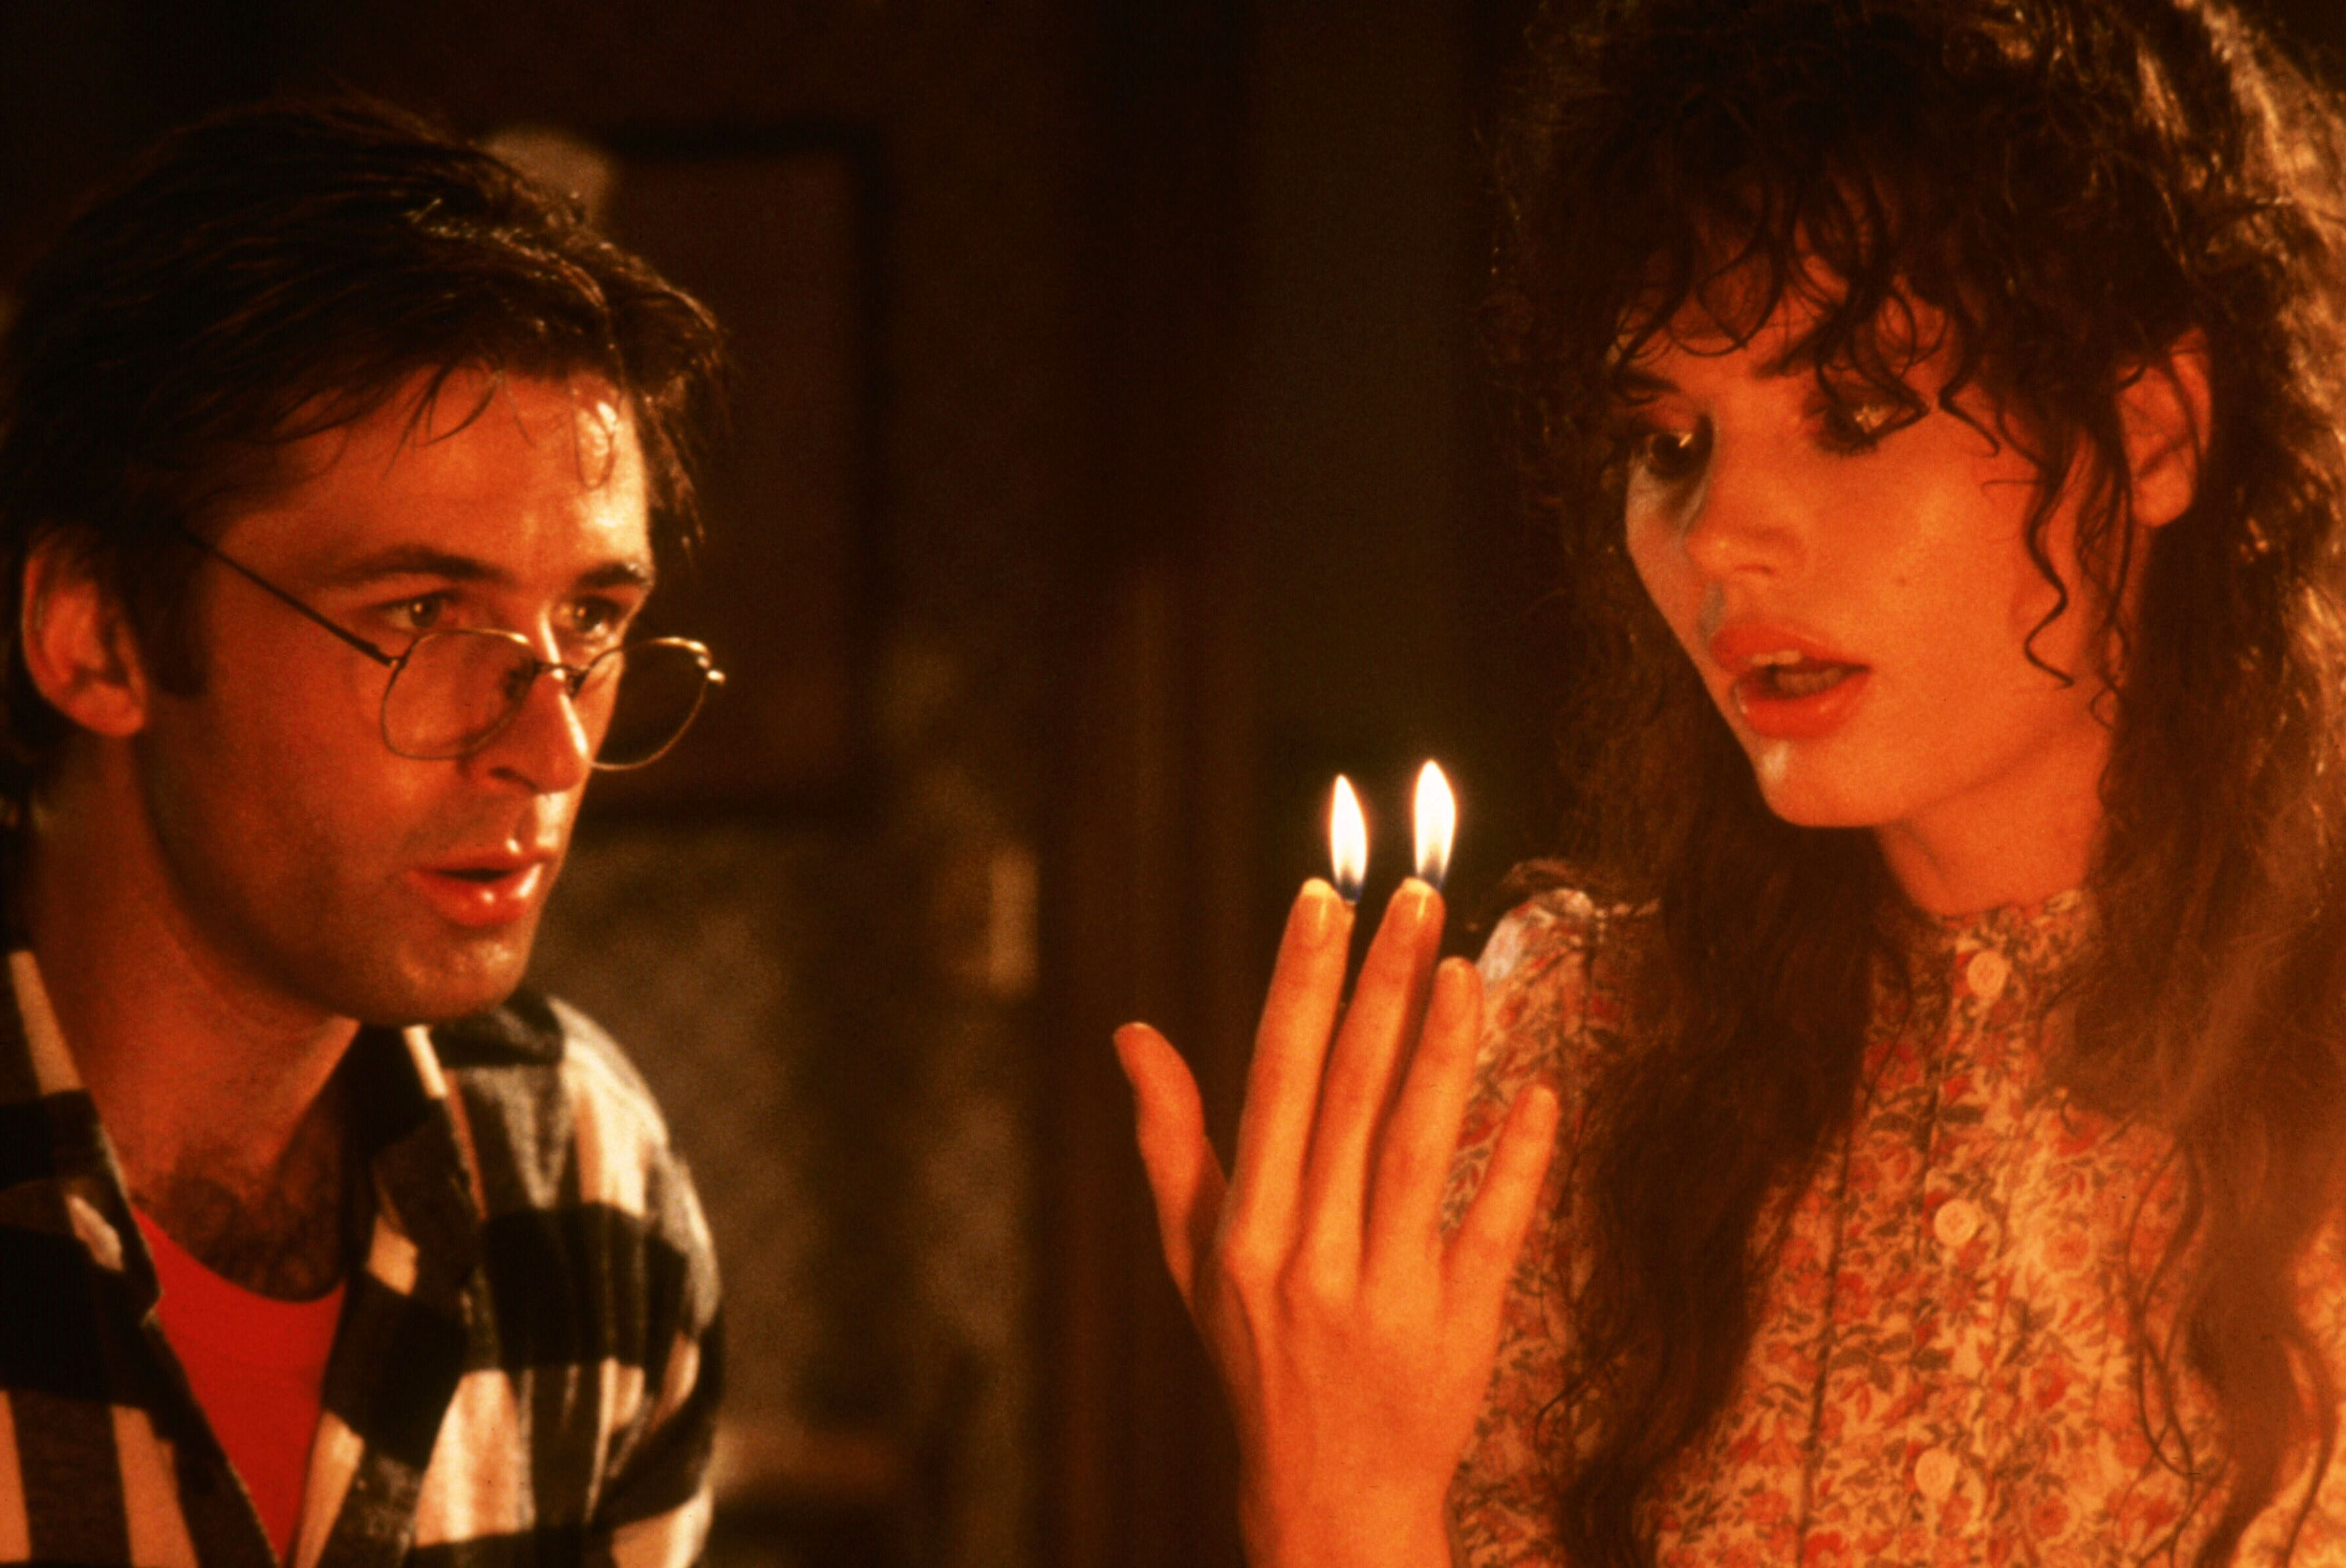 In Beetlejuice Haunting Is Another Kind Of Quarantine